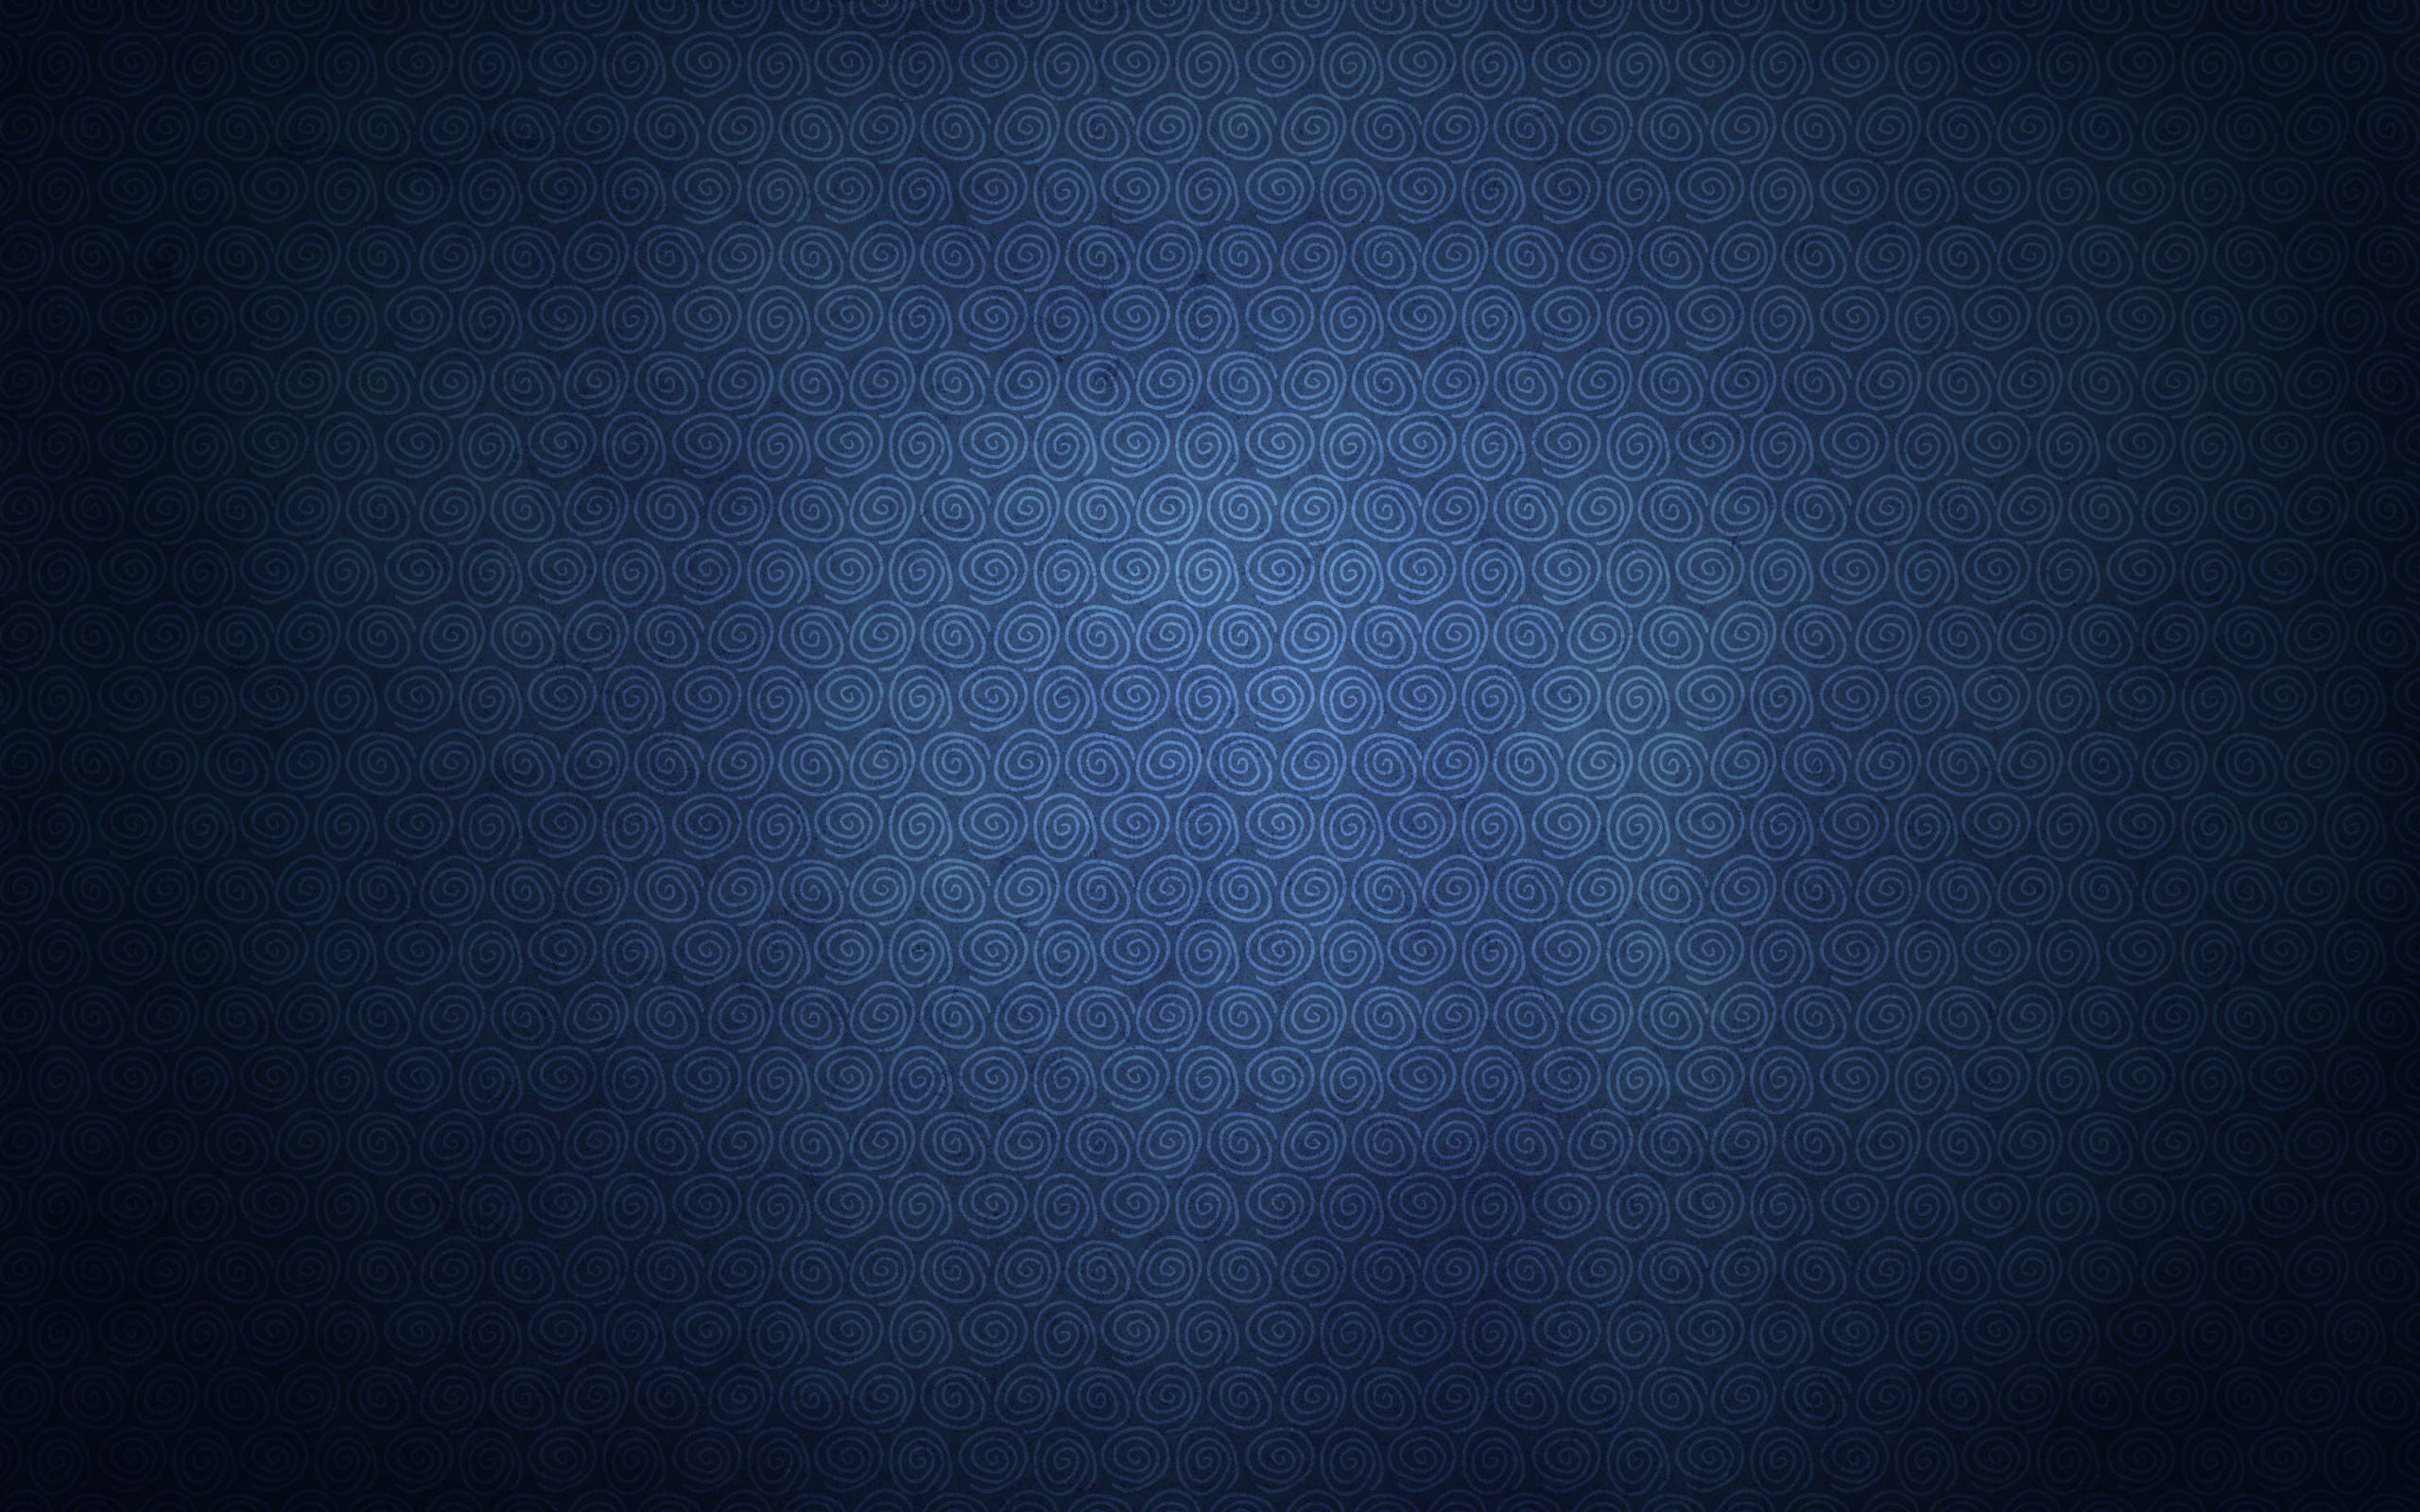 free download wallpaper hd dark blue background images